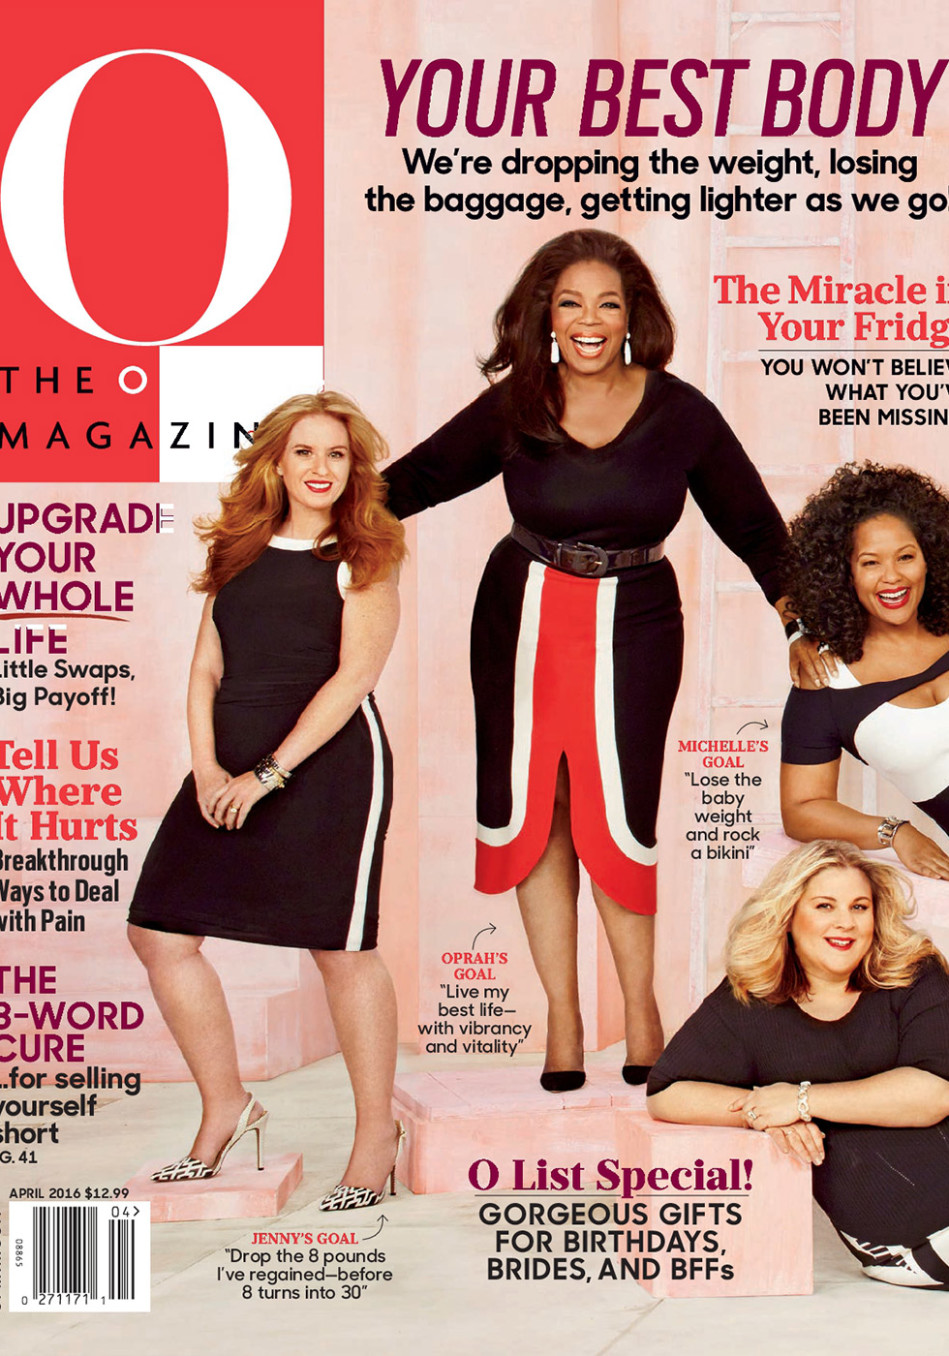 Behind the Scenes of Oprah's April 2016 Cover